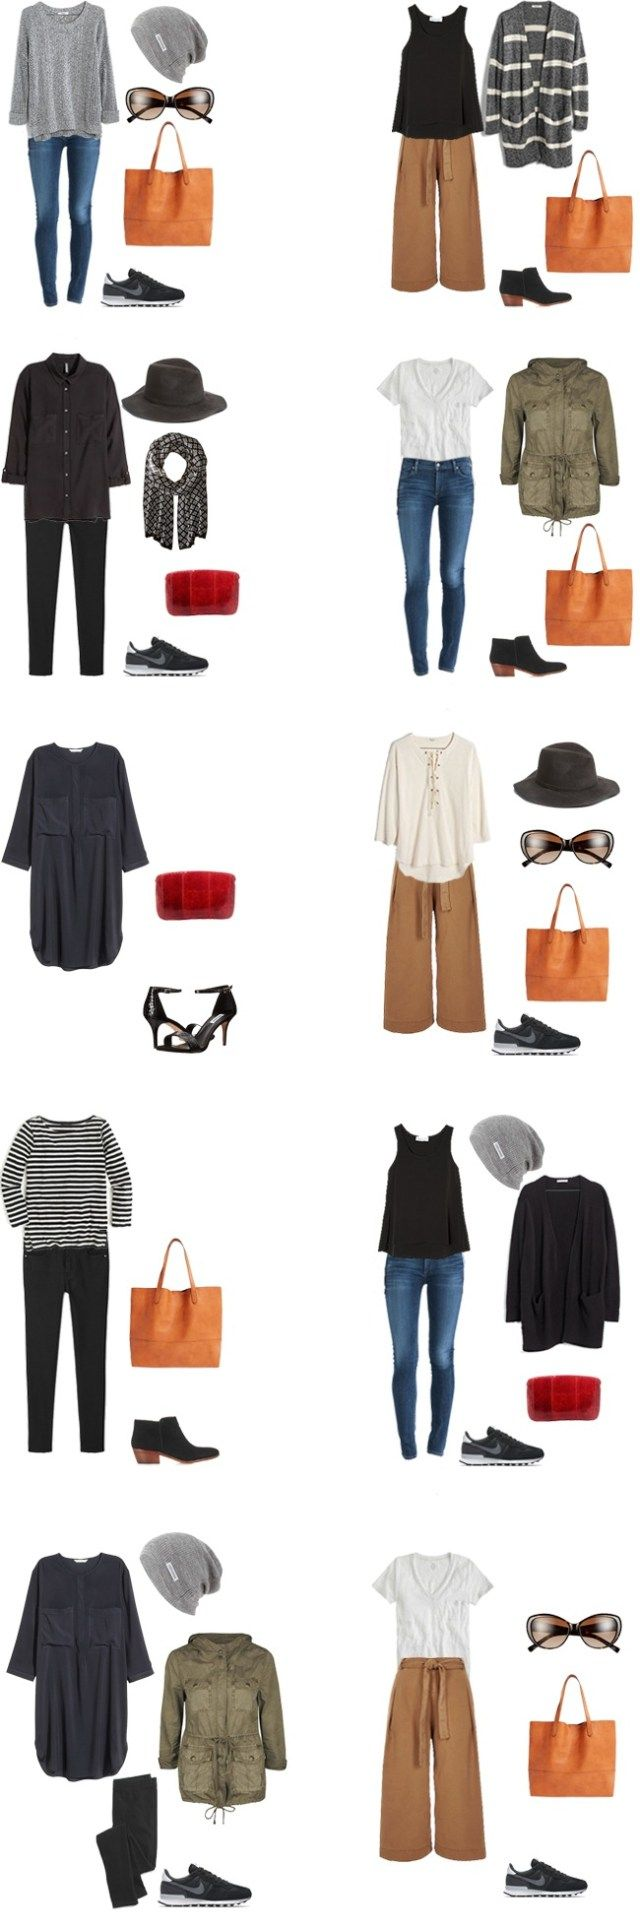 What to Wear on an Alaskan Cruise Outfits 1-10 #travellight #packinglight #traveltips #travel